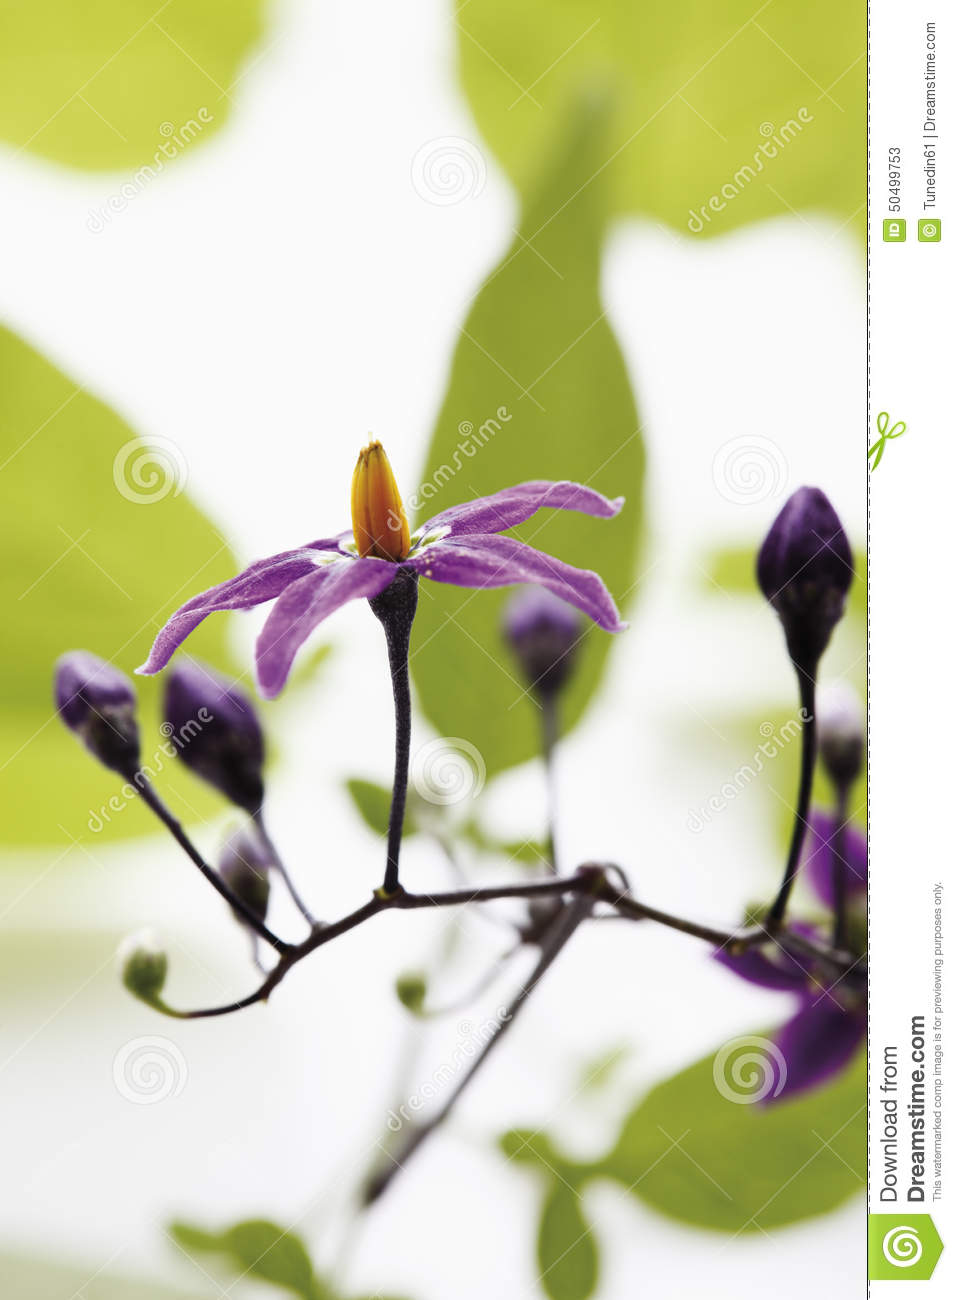 Flower And Buds Of Bittersweet Nightshade Stock Photo